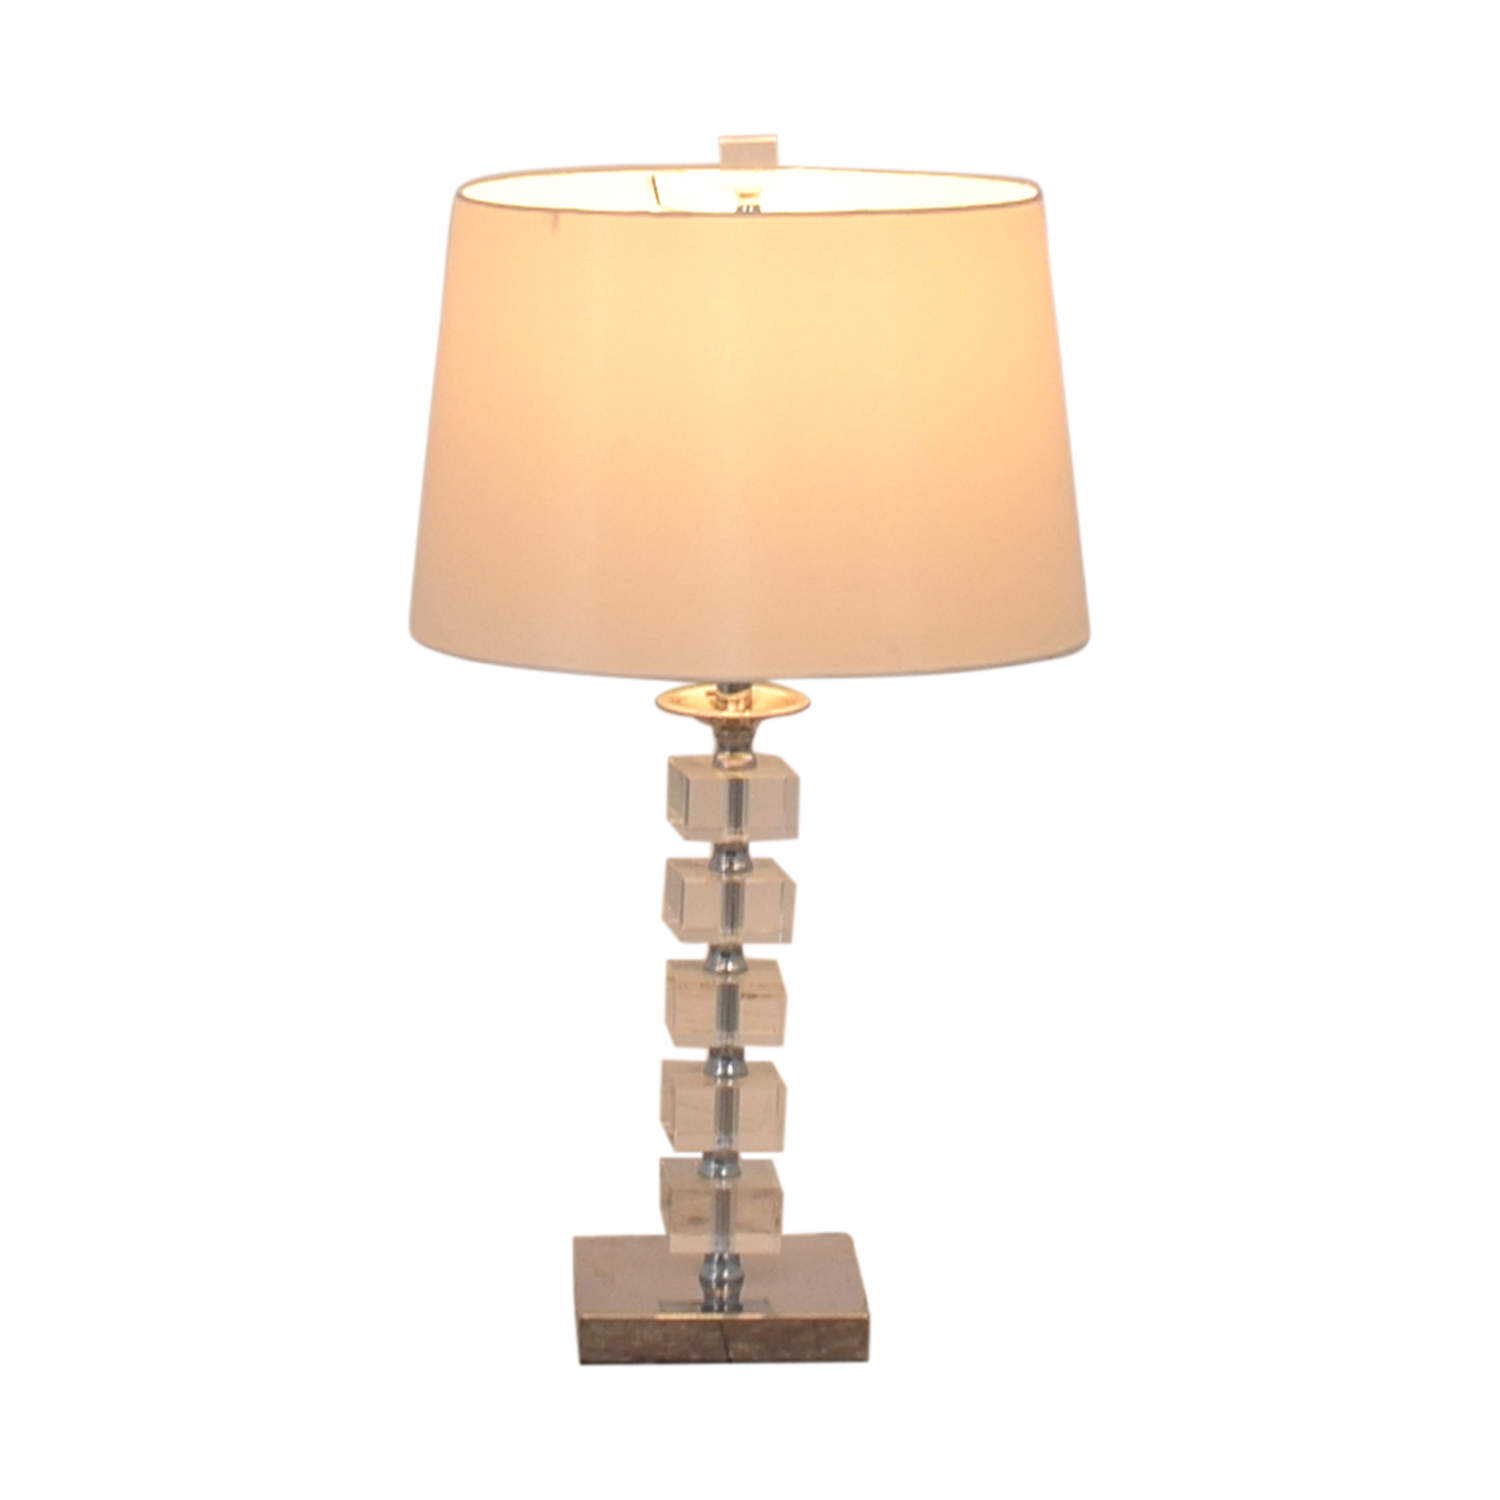 Vienna Vienna Full Spectrum Square Globe Table Lamp on sale